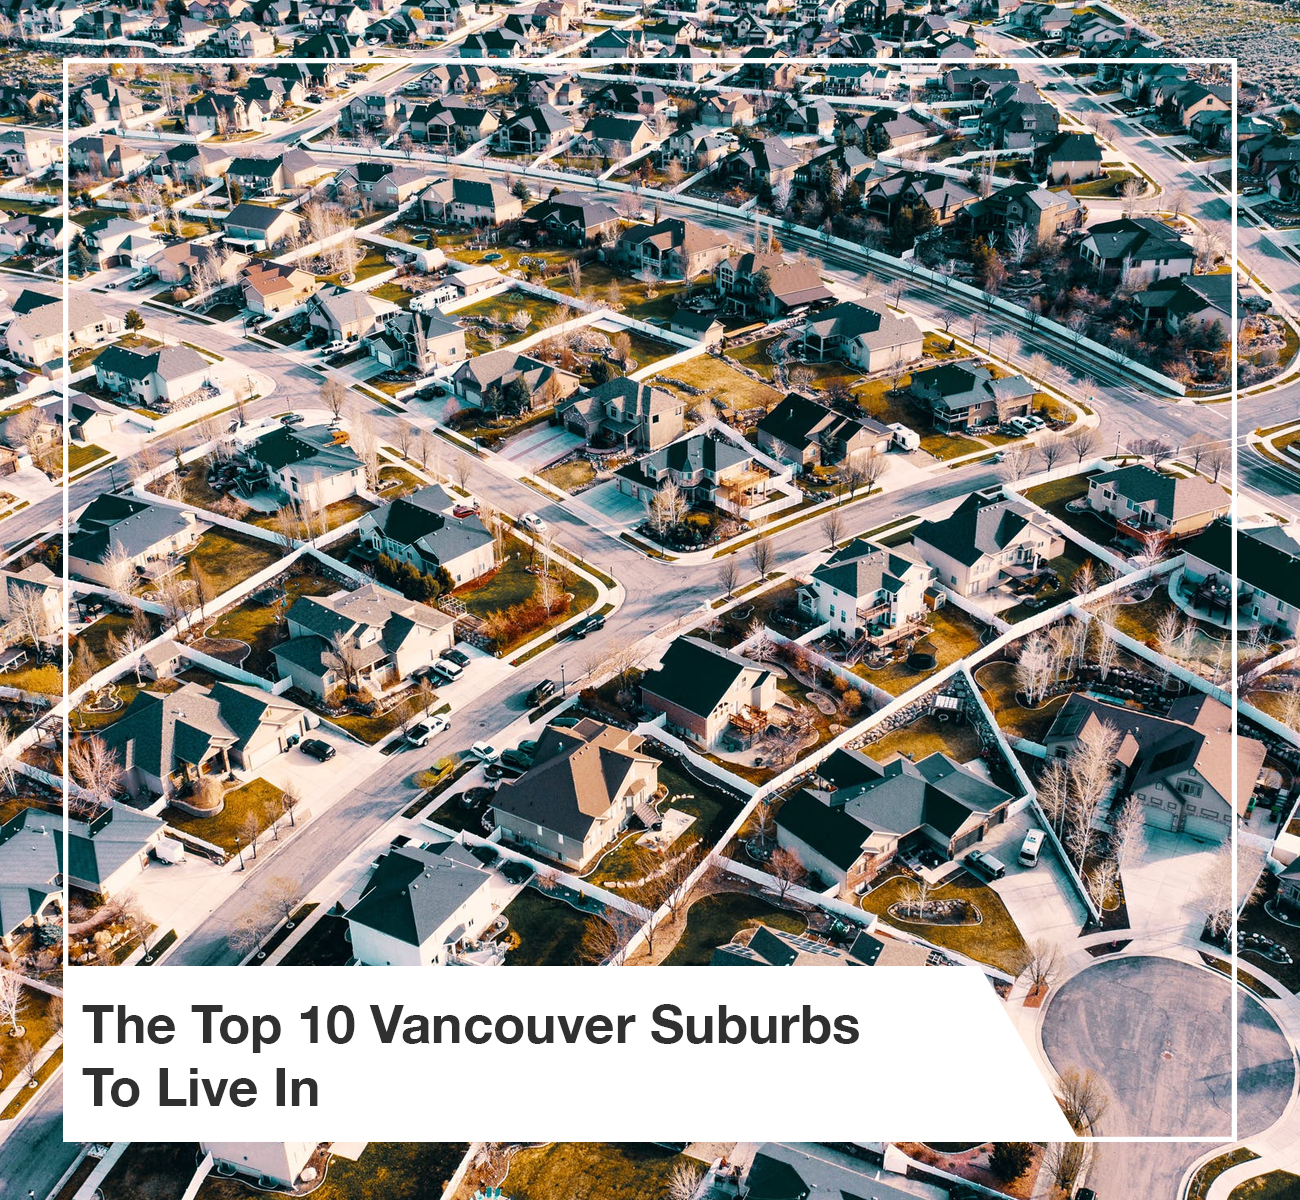 Top 10 Vancouver Suburbs